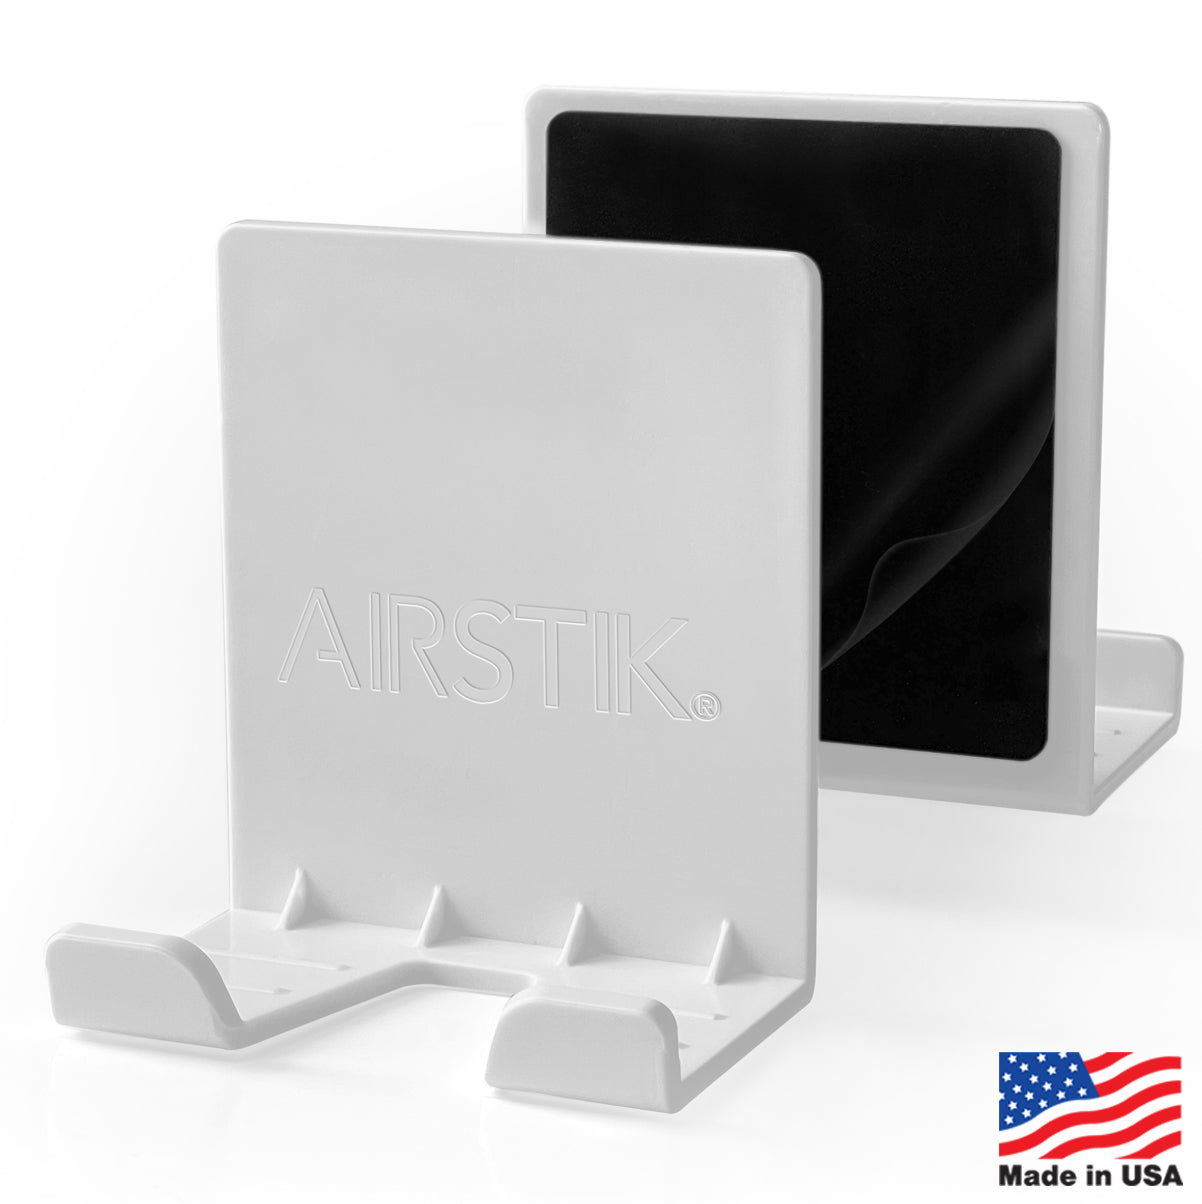 AIRSTIK BRAND PRODUCTS